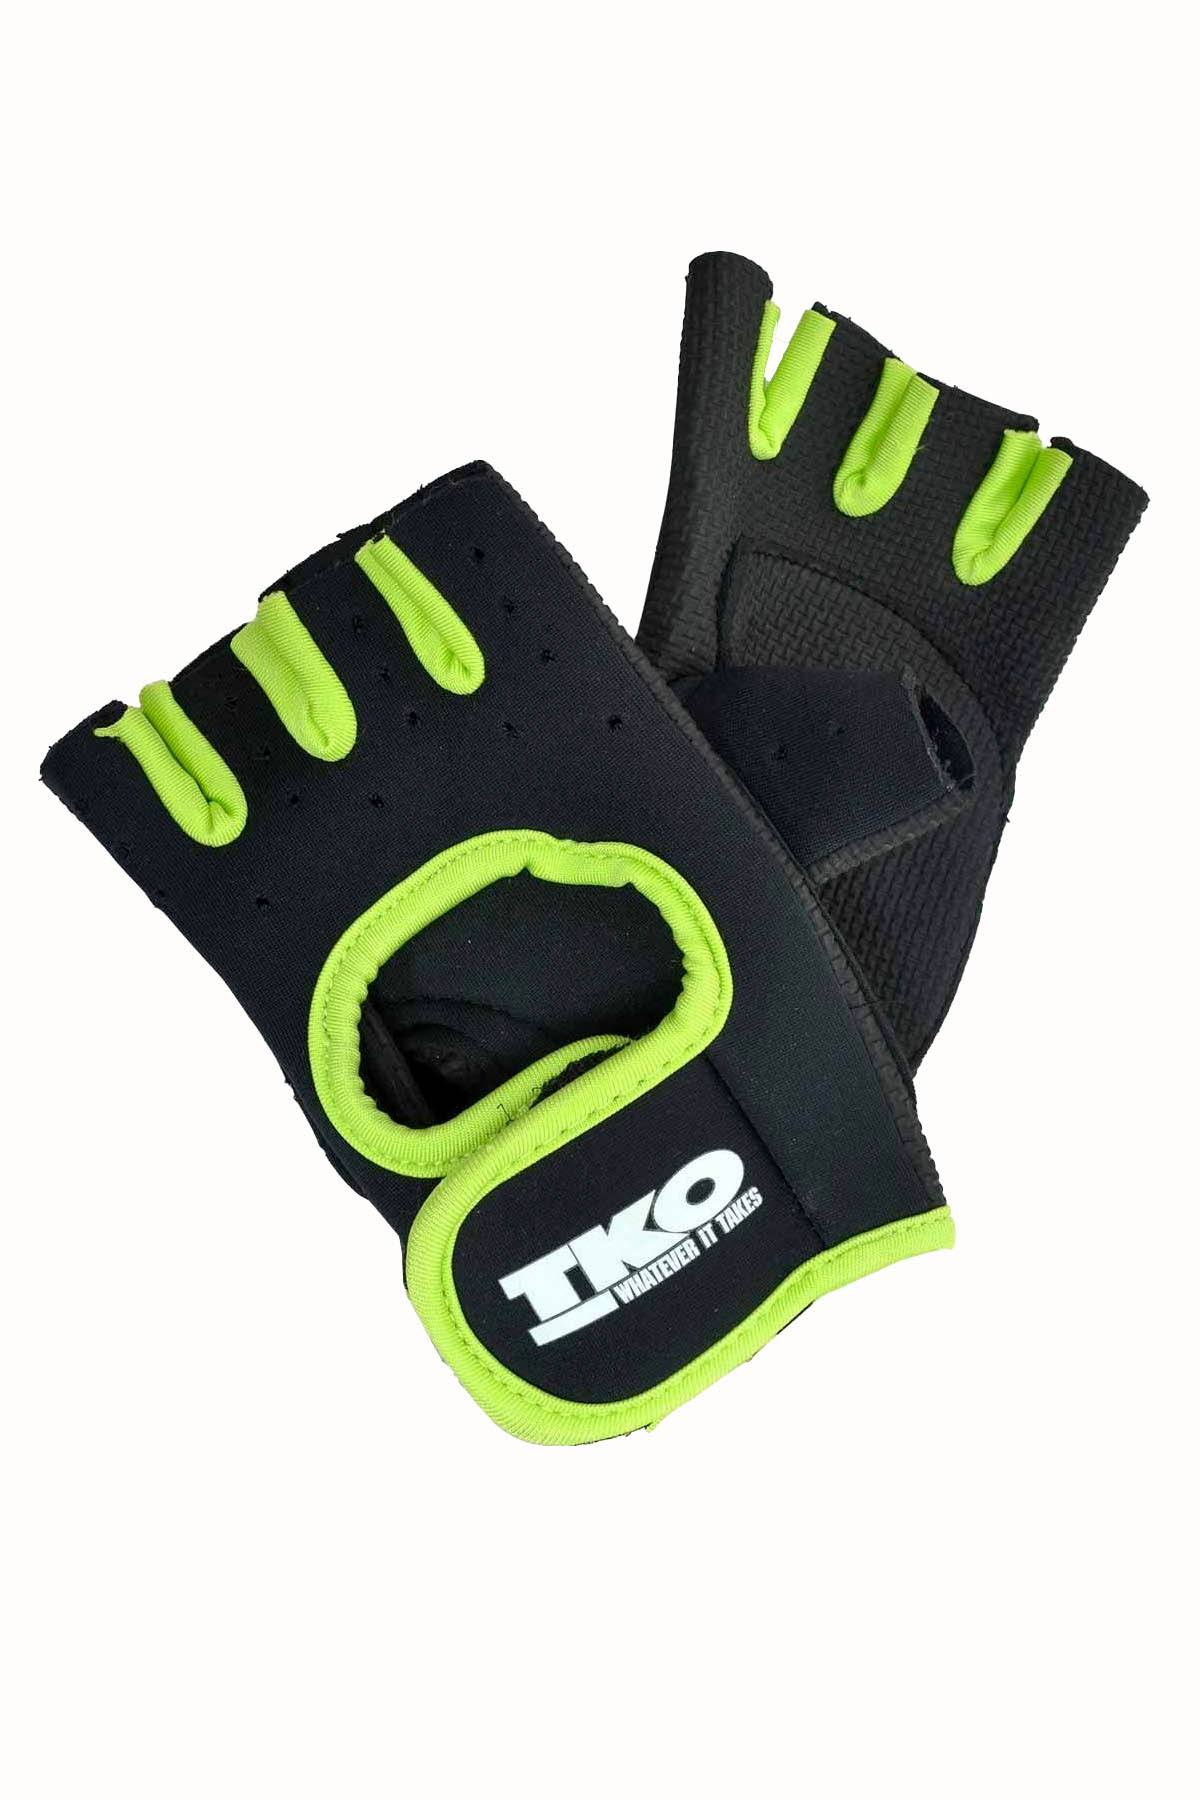 TKO Black & Green Universal Padded Athletic Gloves